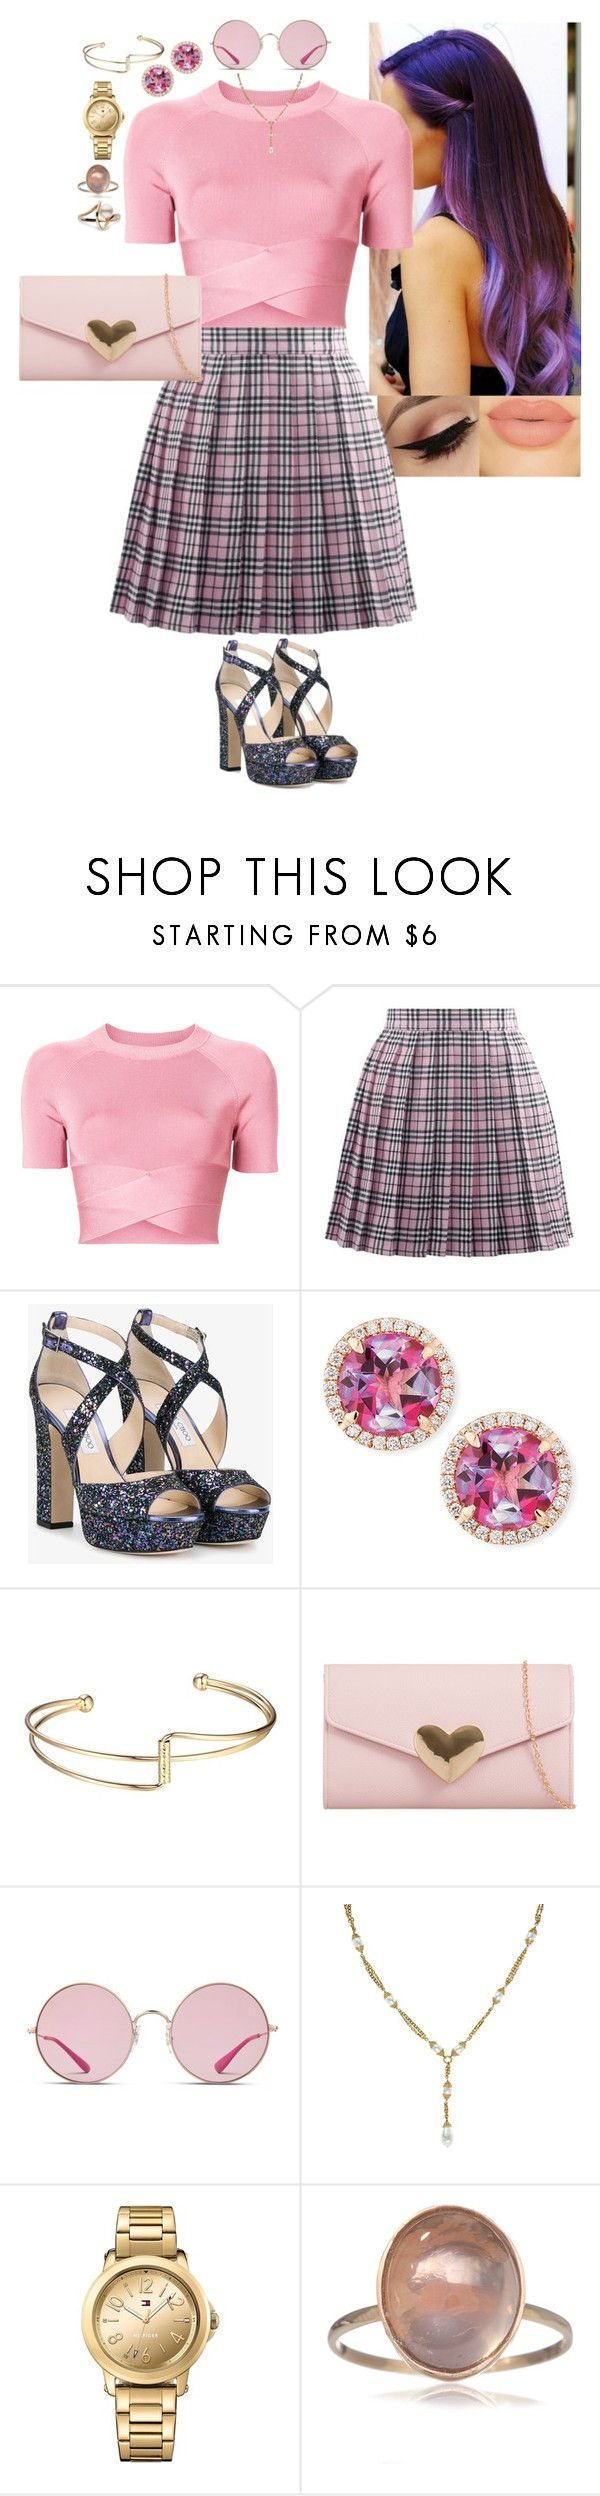 """""""Clueless"""" by stinze on Polyvore featuring T By Alexander Wang, Jimmy Choo, Frederic Sage, Ray-Ban, Chanel and Tommy Hilfiger"""